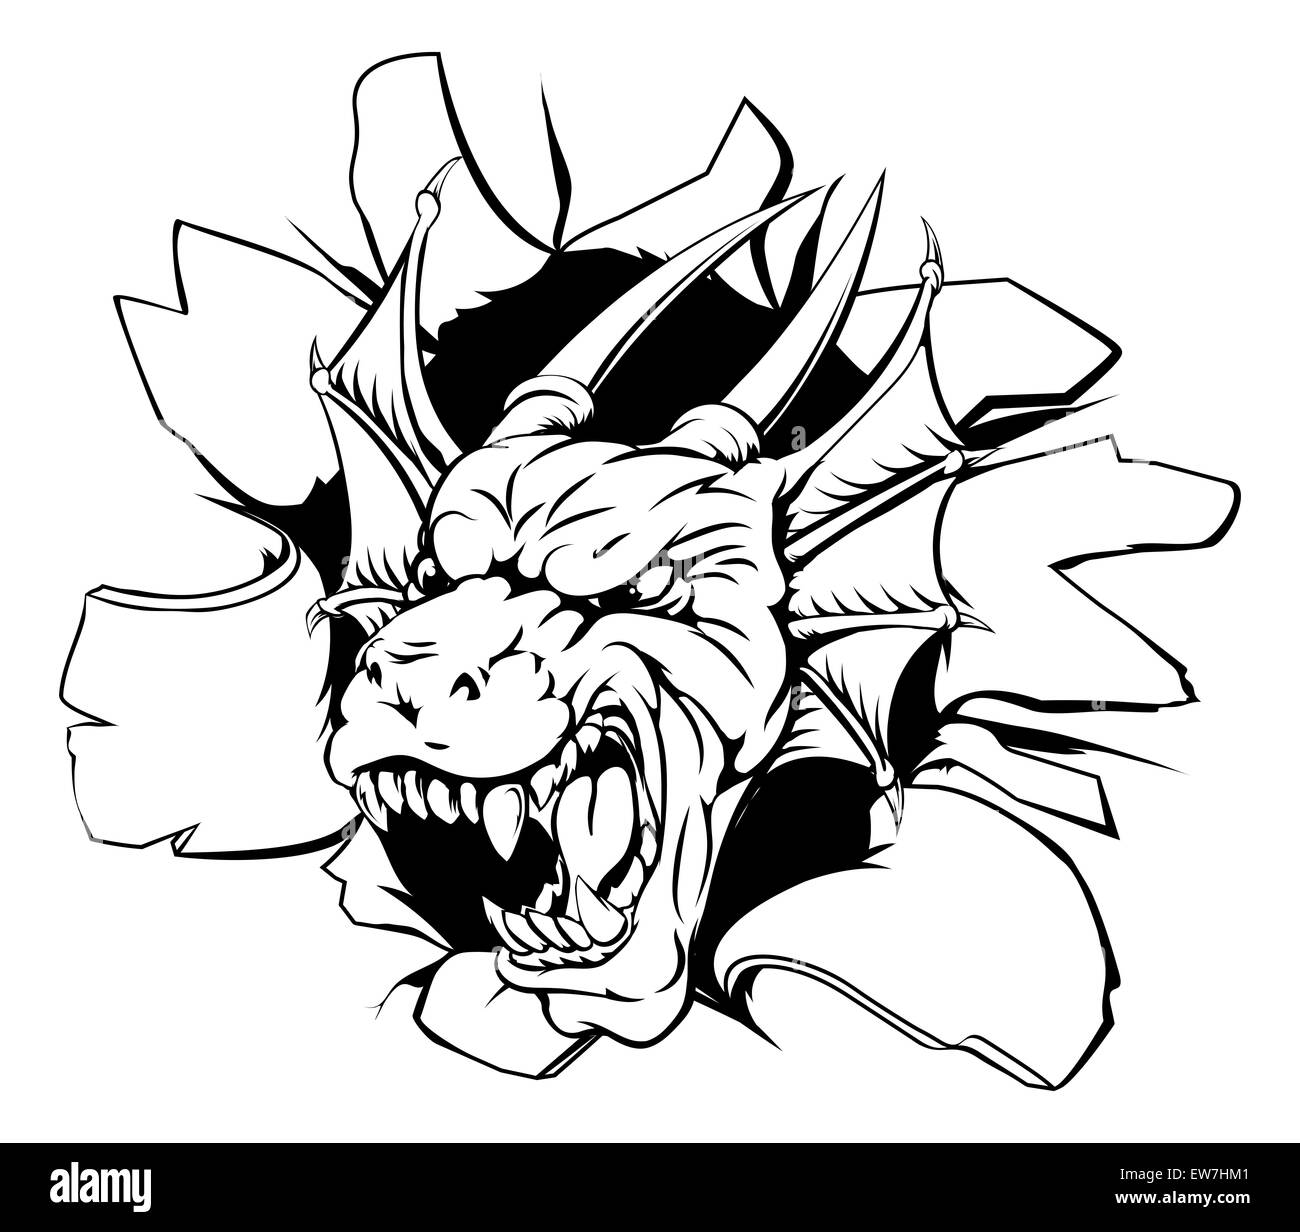 dragons head black and white stock photos u0026 images alamy